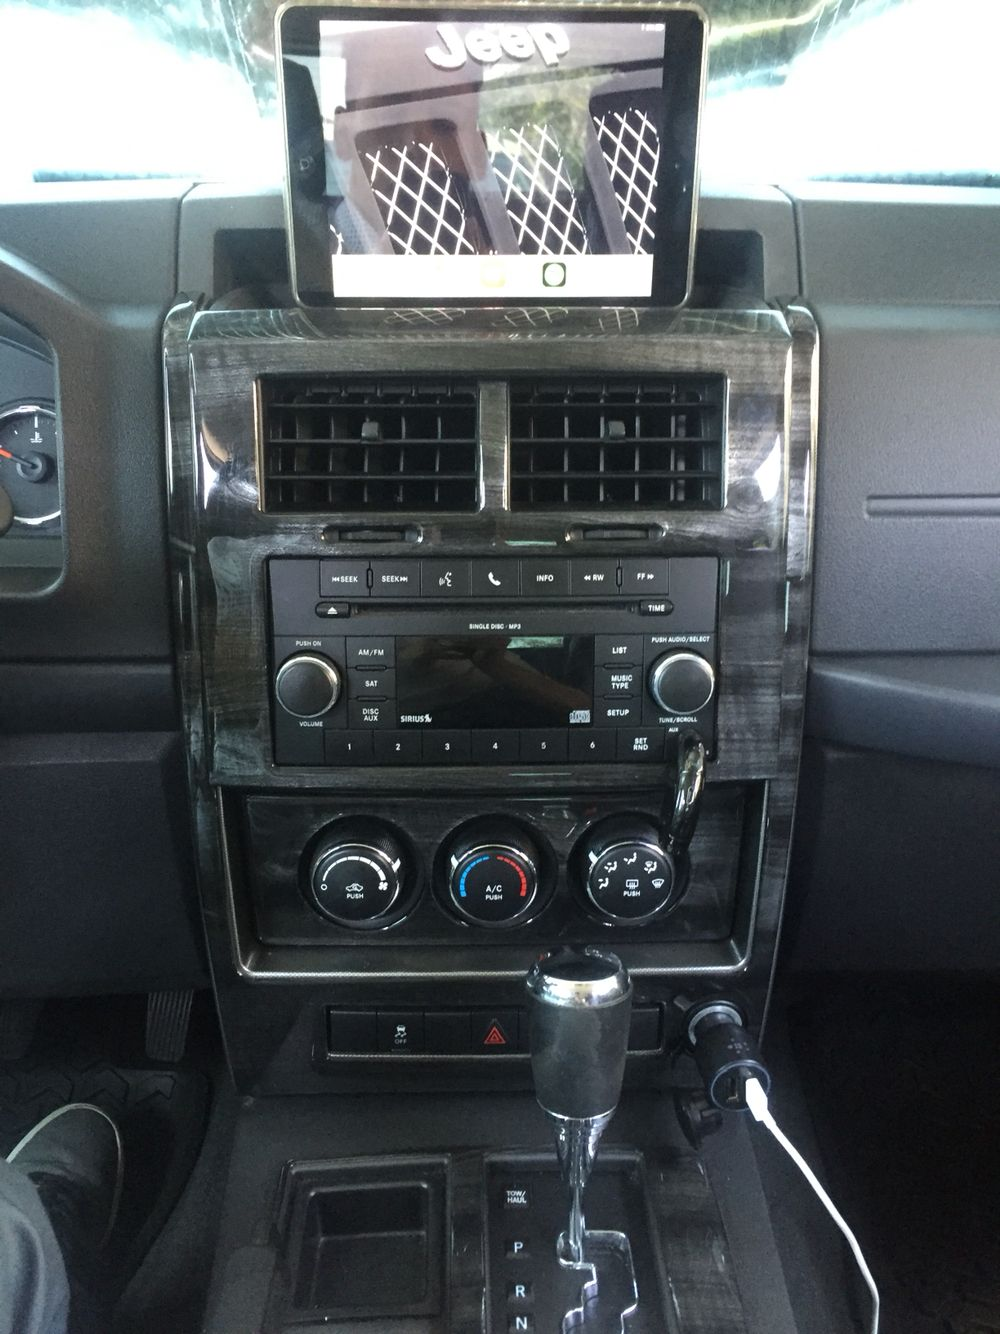 Ipad Mini In Jeep Liberty Kk 2011 Held Place By A Magnate I Dash 2003 Chevy Silverado Also Updated My Trim To Remin Ebony Zebra Kit